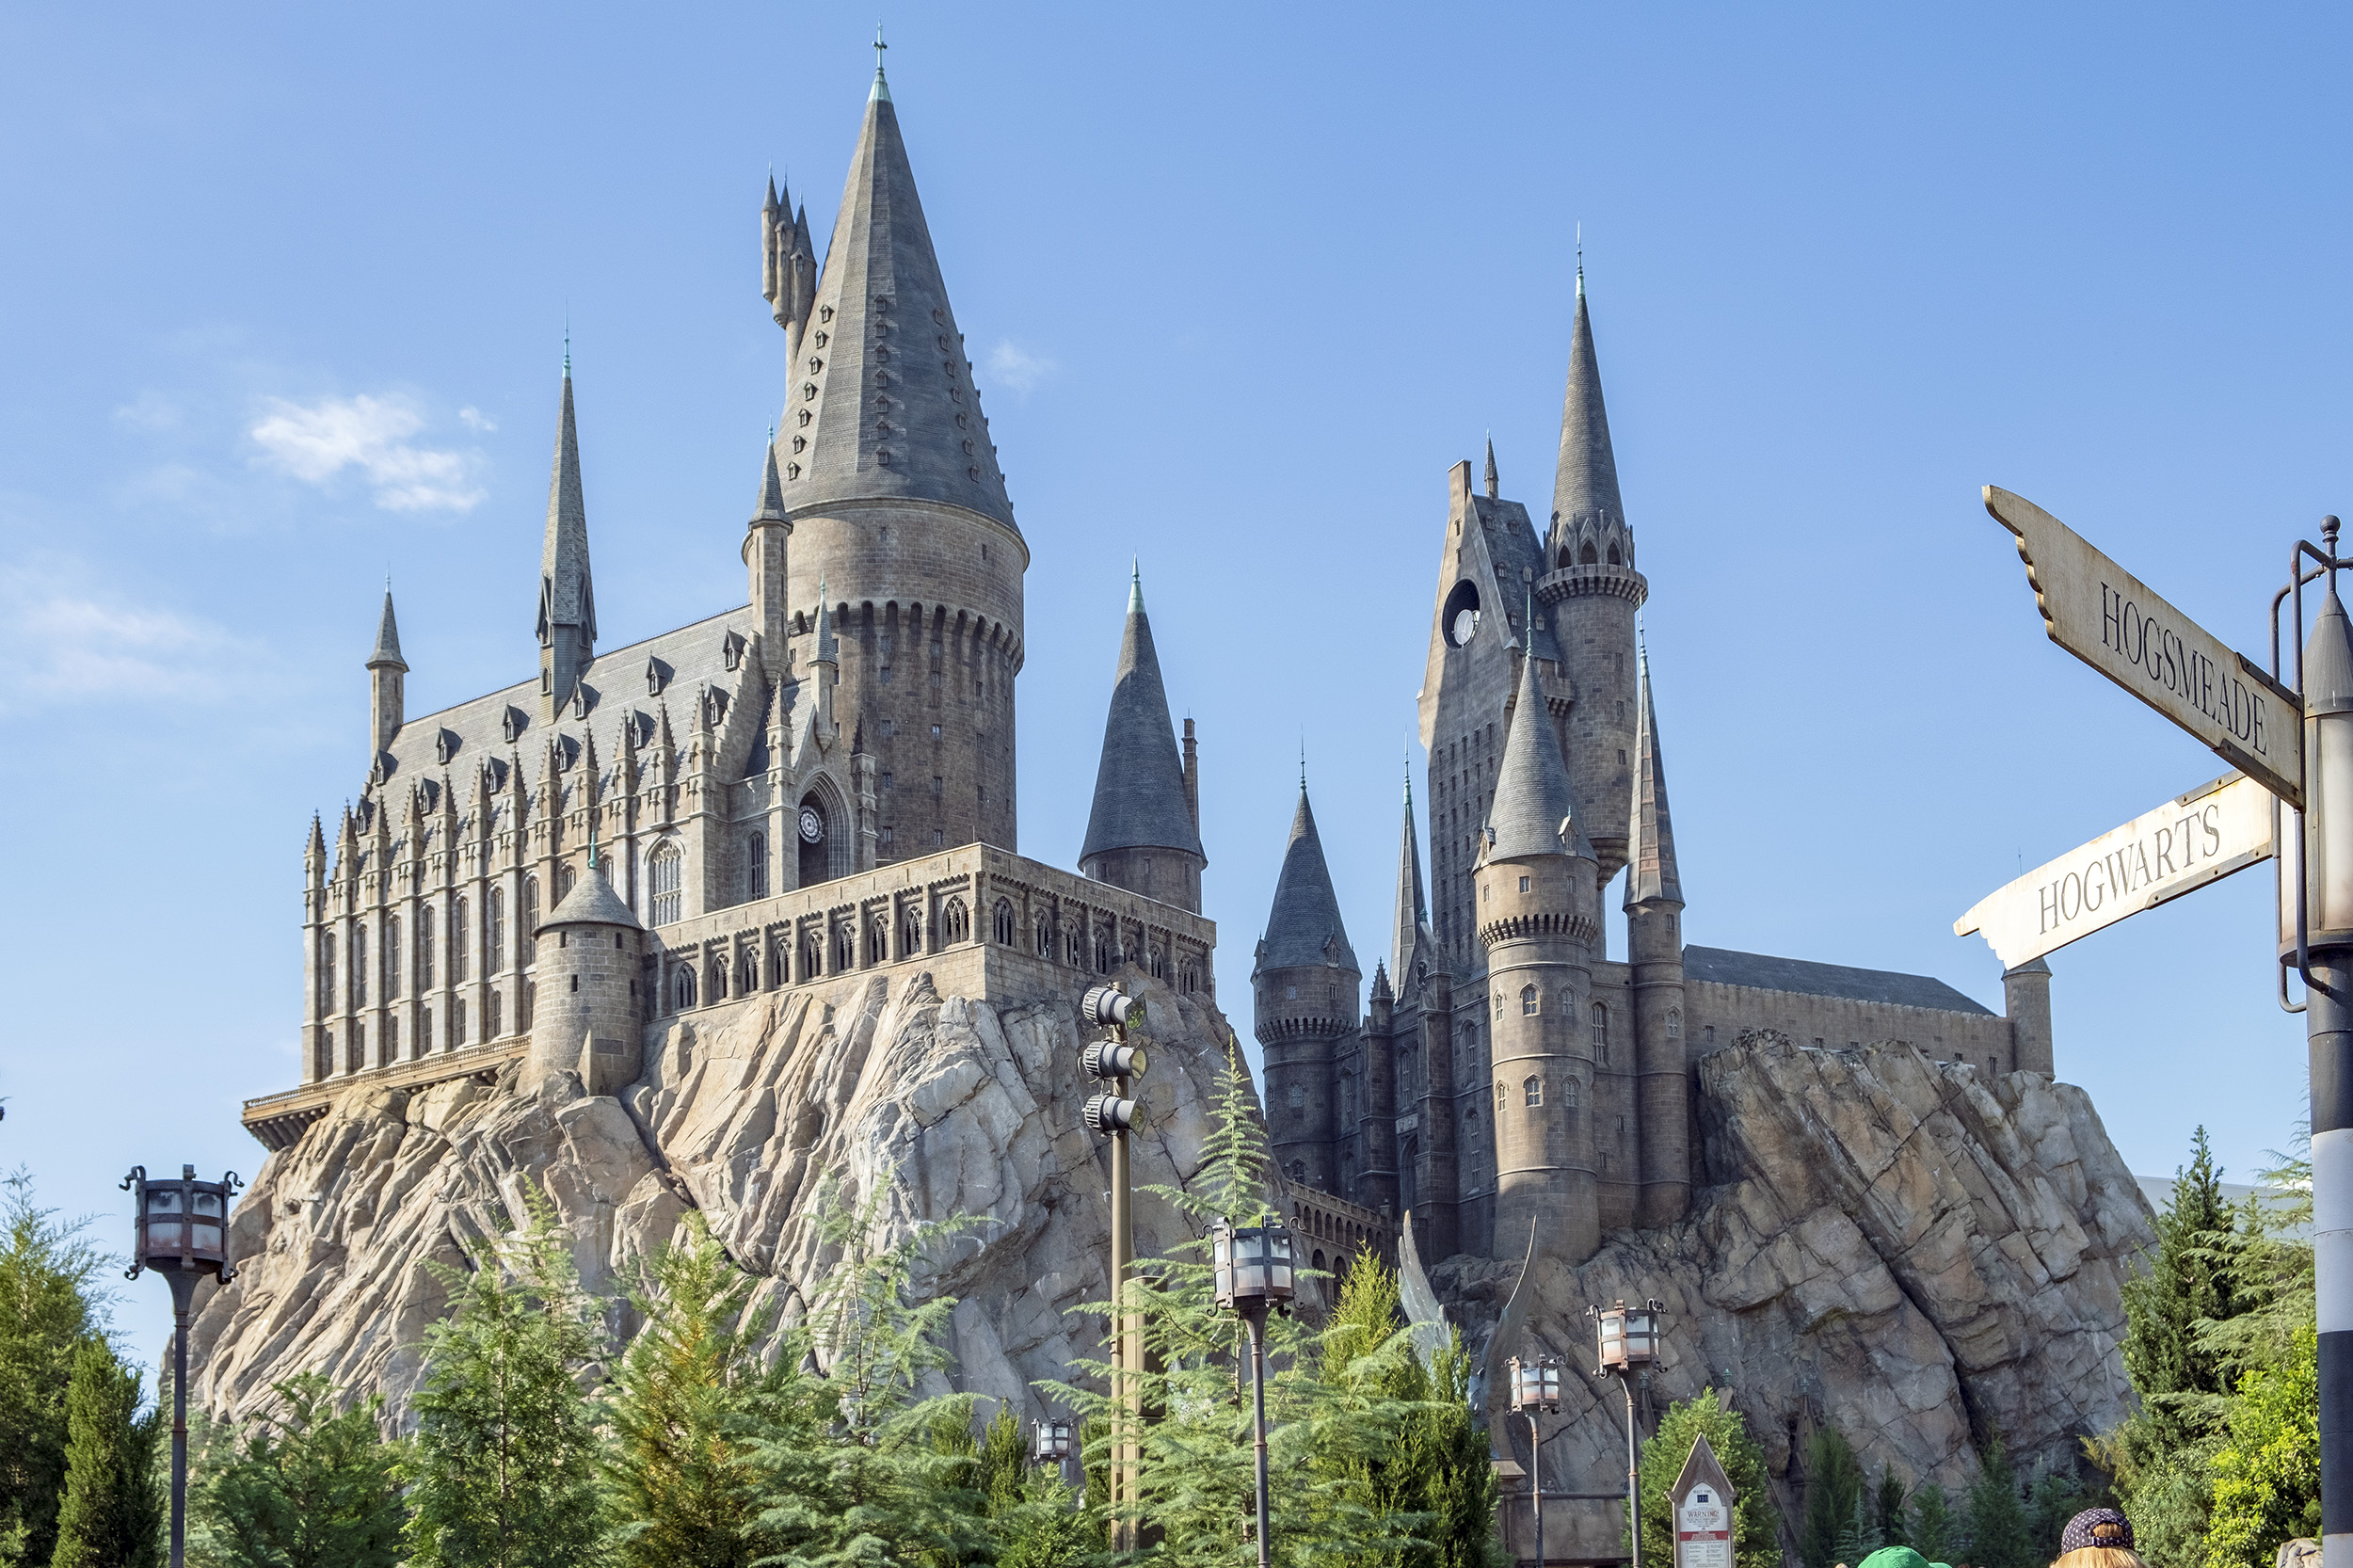 Hogwarts Castle i Wizarding World of Harry Potter